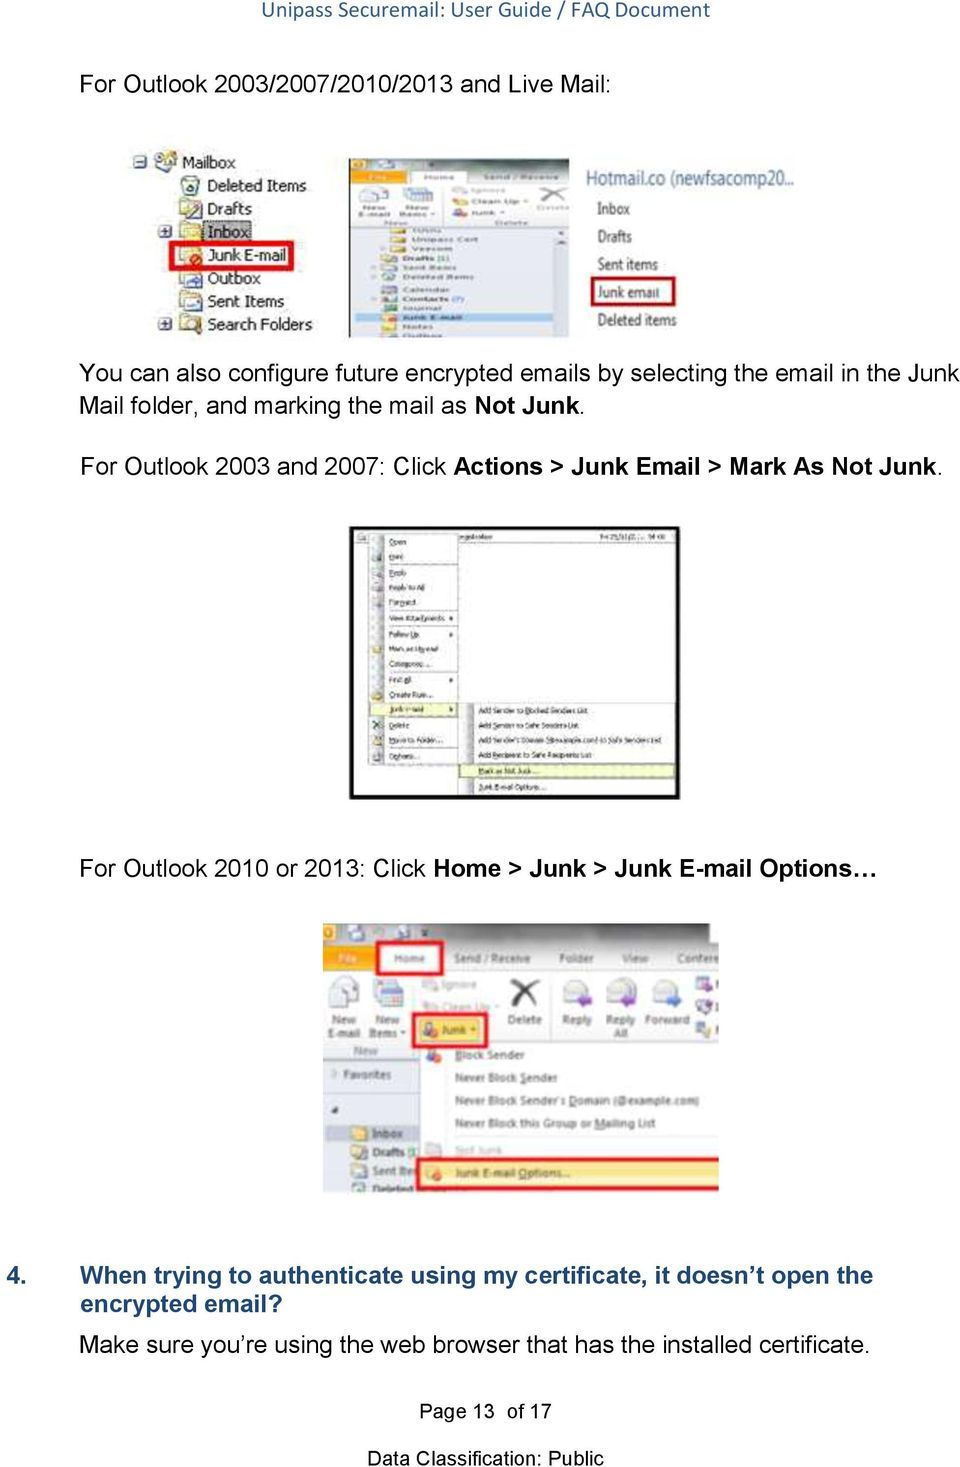 For Outlook 2003 and 2007: Click Actions > Junk Email > Mark As Not Junk.